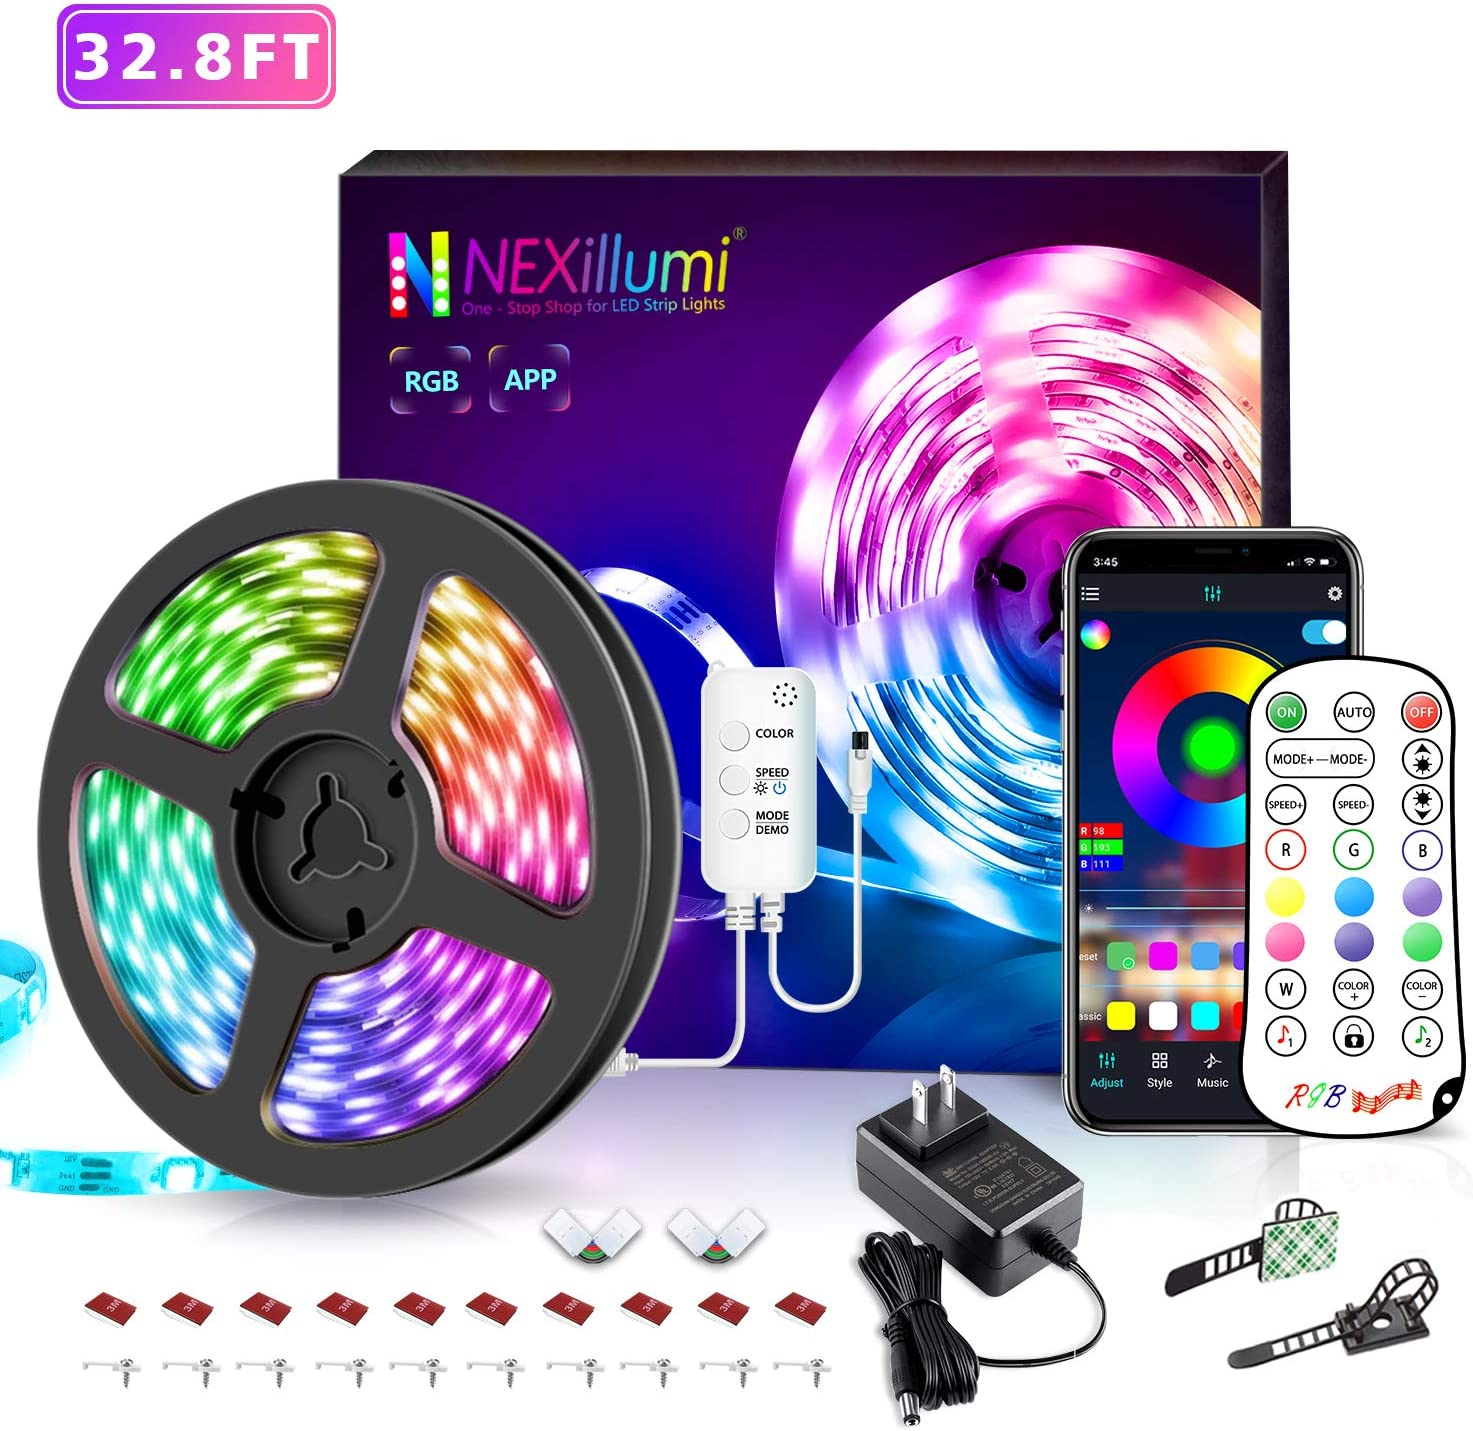 32.8 ft LED Strip Lights Music Sync LED Lights for Bedroom with IR Remote App Controlled with Built-in Mic Color Changing 5050 RGB LED Light Strip (32.8Ft APP+ Remote+ Mic)